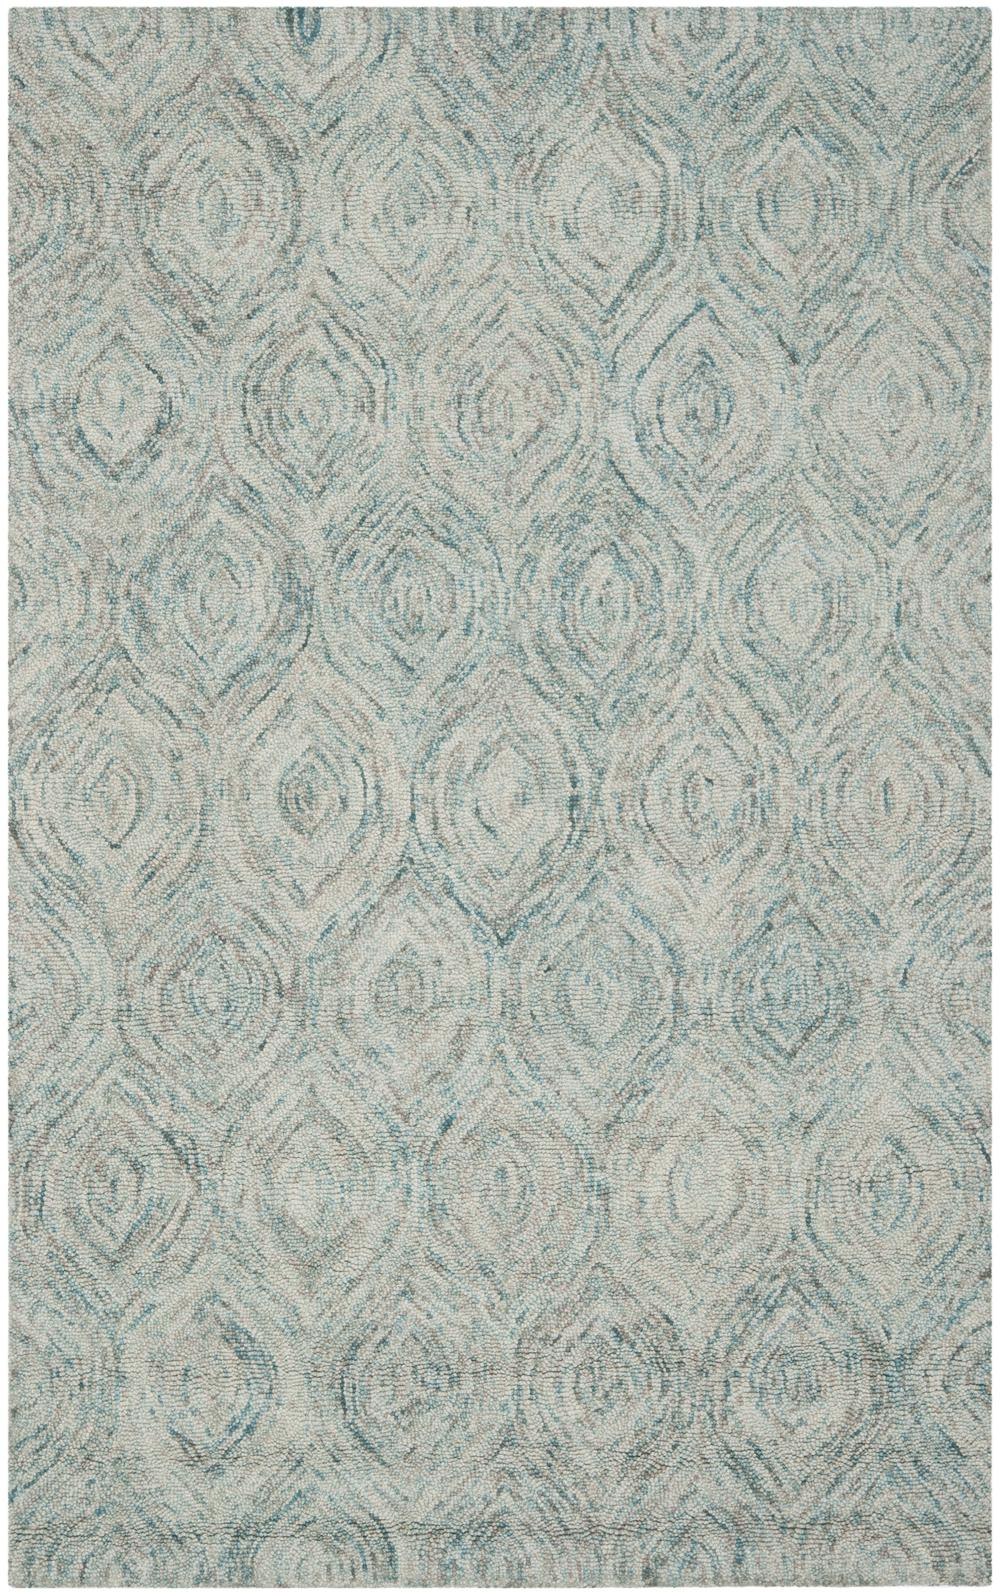 safavieh ikat ikta ivory and sea blue area rug  free shipping - hover to zoom